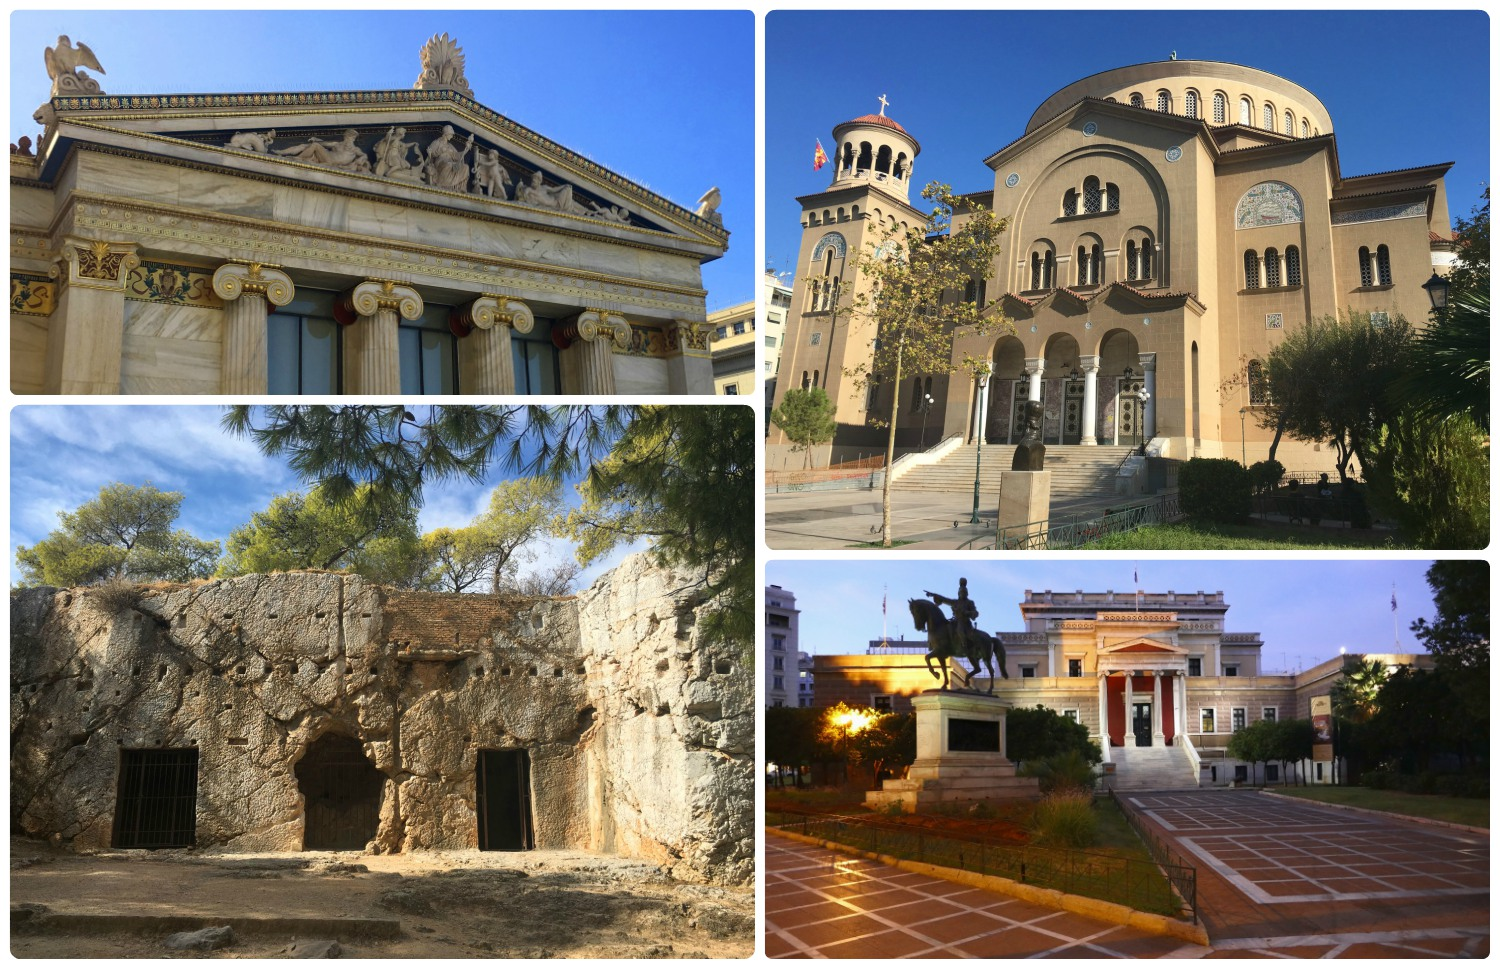 From ancient ruins to Greek academies, and from modern churches to parliament buildings, there's something for every architectural taste!Clockwise (from the top left): Academy of Athens, Church of Saint Panteleimon, Old Parliament House, Socrates Prison on Pnyx Hill.